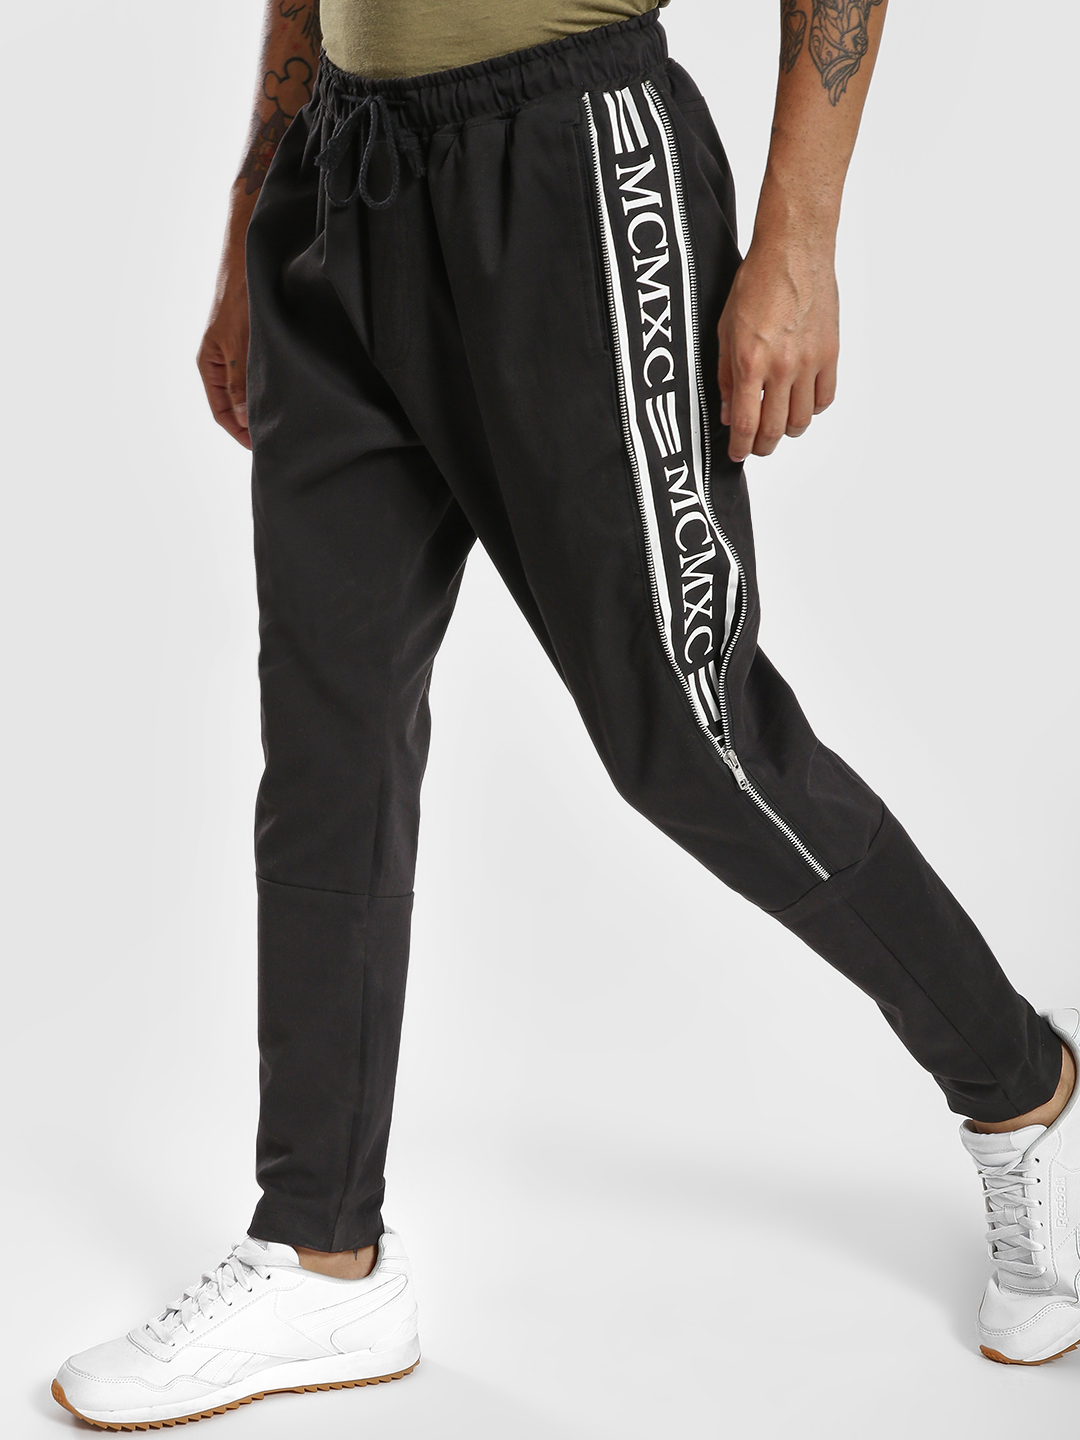 KOOVS Black Text Tape Zipper Jog Pants 1